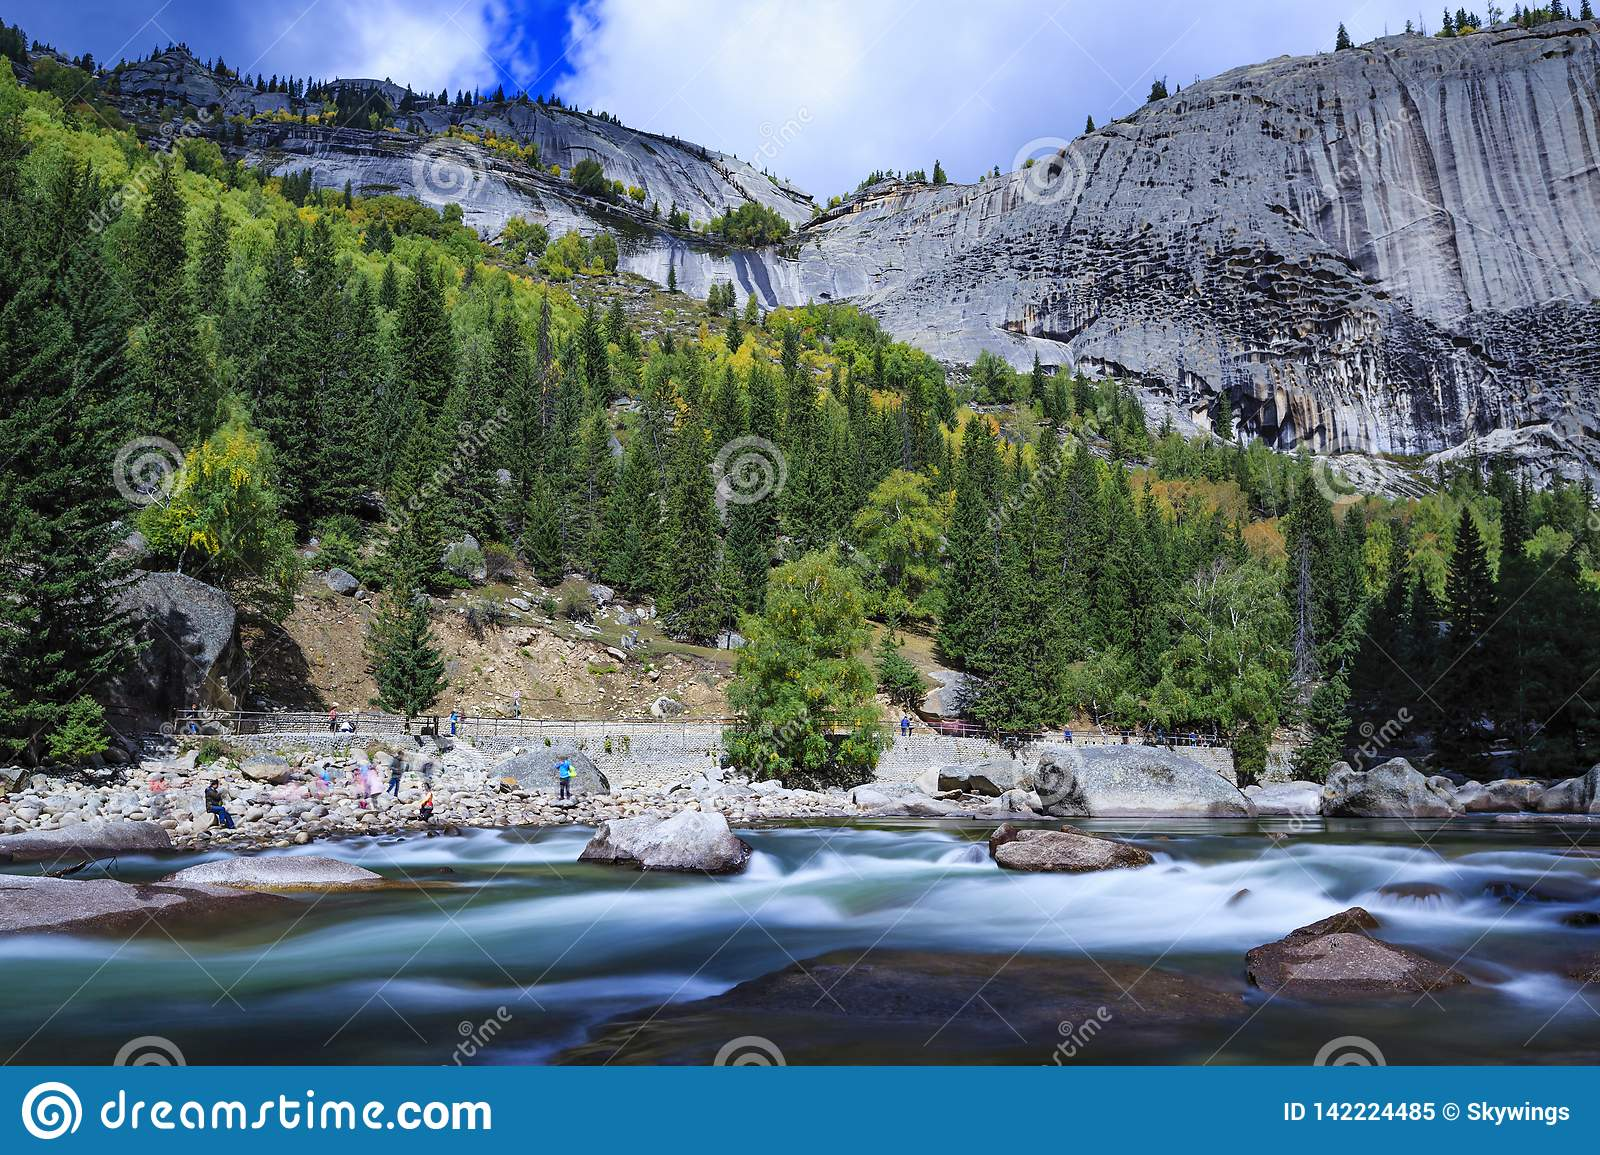 Grand River Flow >> Xinjiang Keketuohai Scenic Area Erqisi River Stock Image